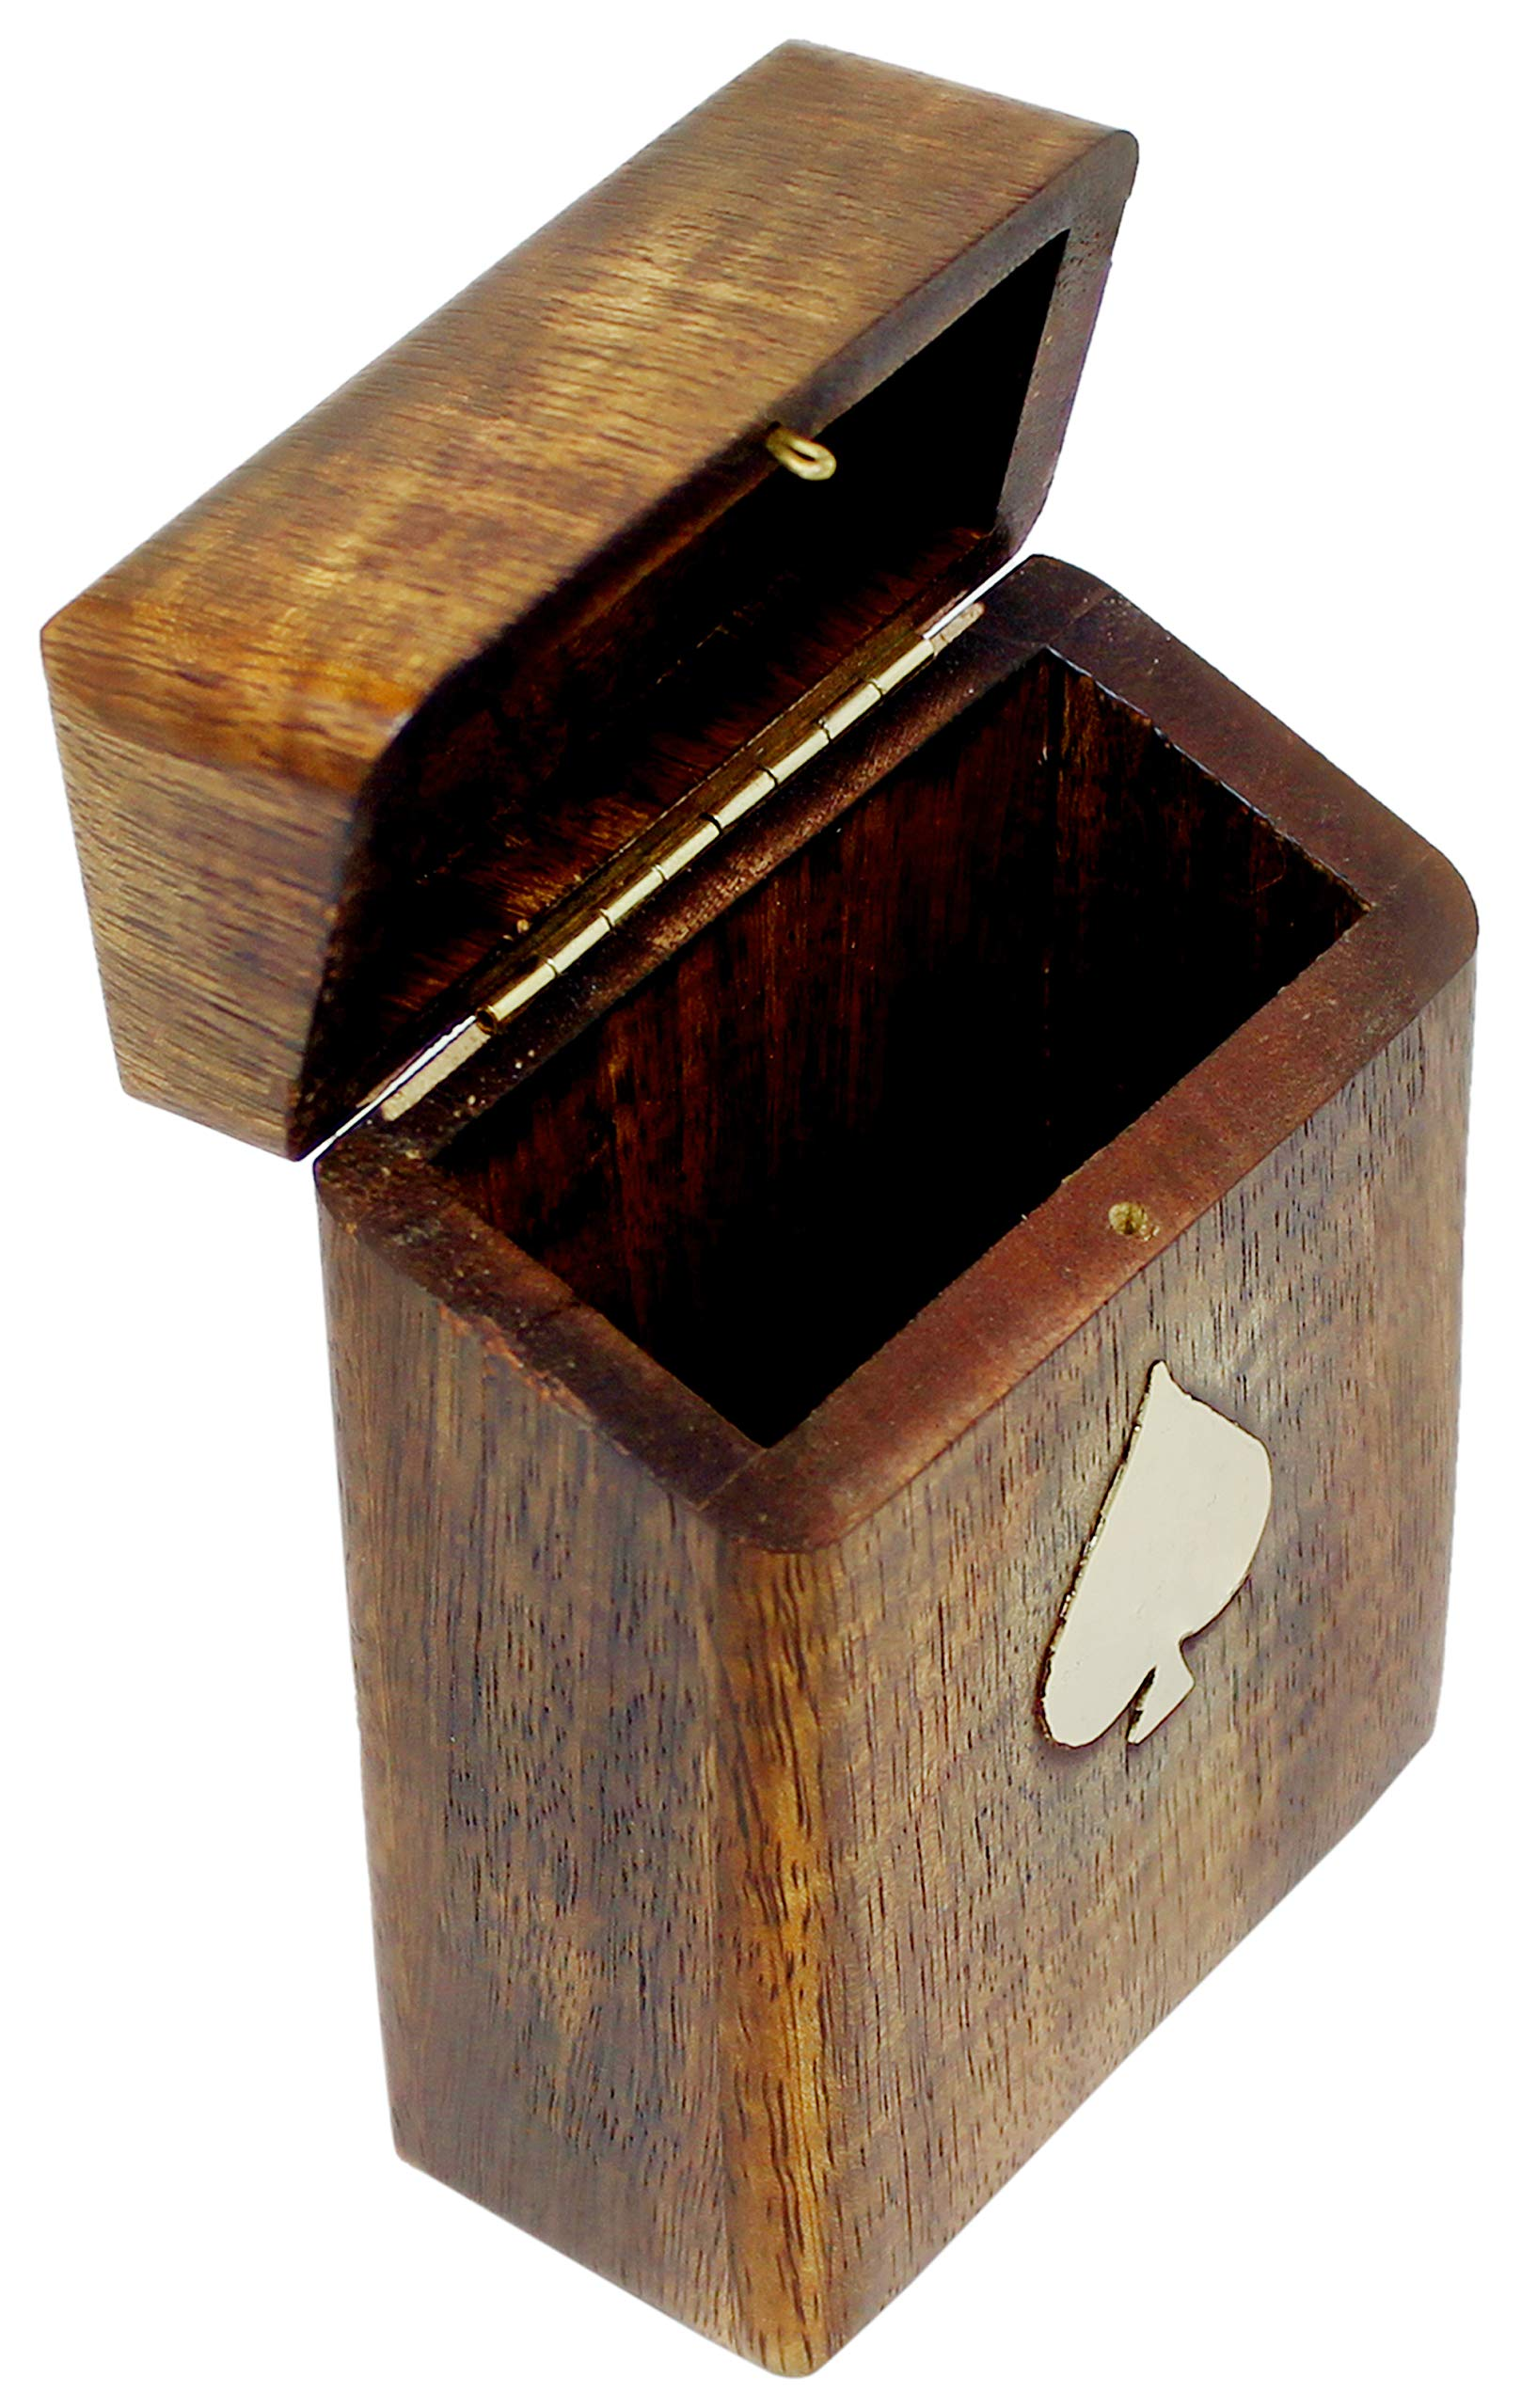 SKAVIJ Playing Card Holder Case Handmade Wooden Box for 1 Deck Playing Poker of Trading Cards Gifts